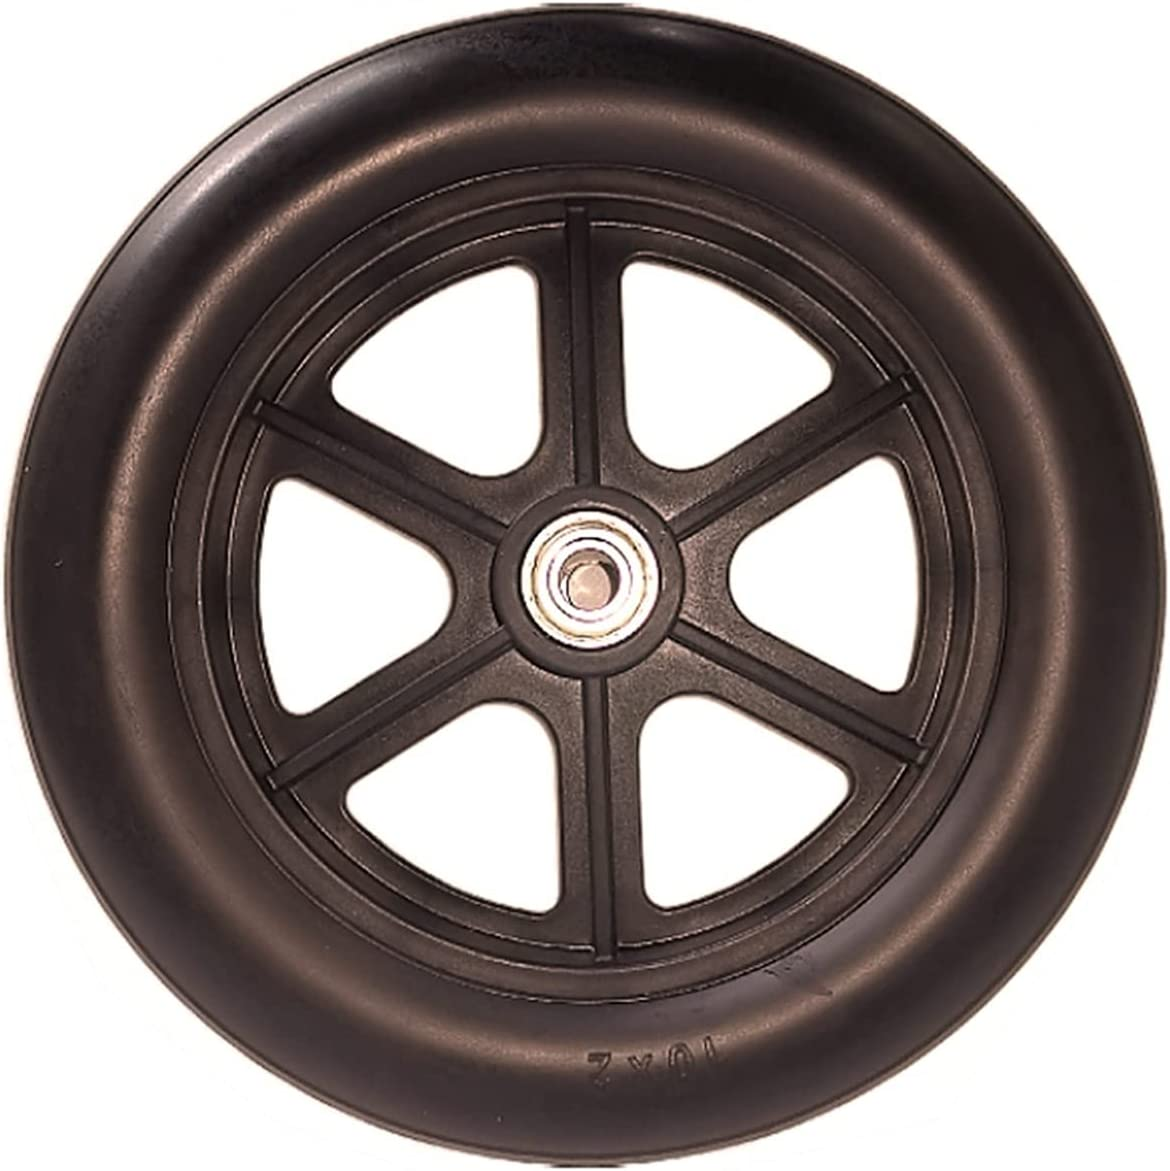 Wheelchair wheels 1 Accessories Clearance SALE Limited time Rear 10-inch Sale item Tires